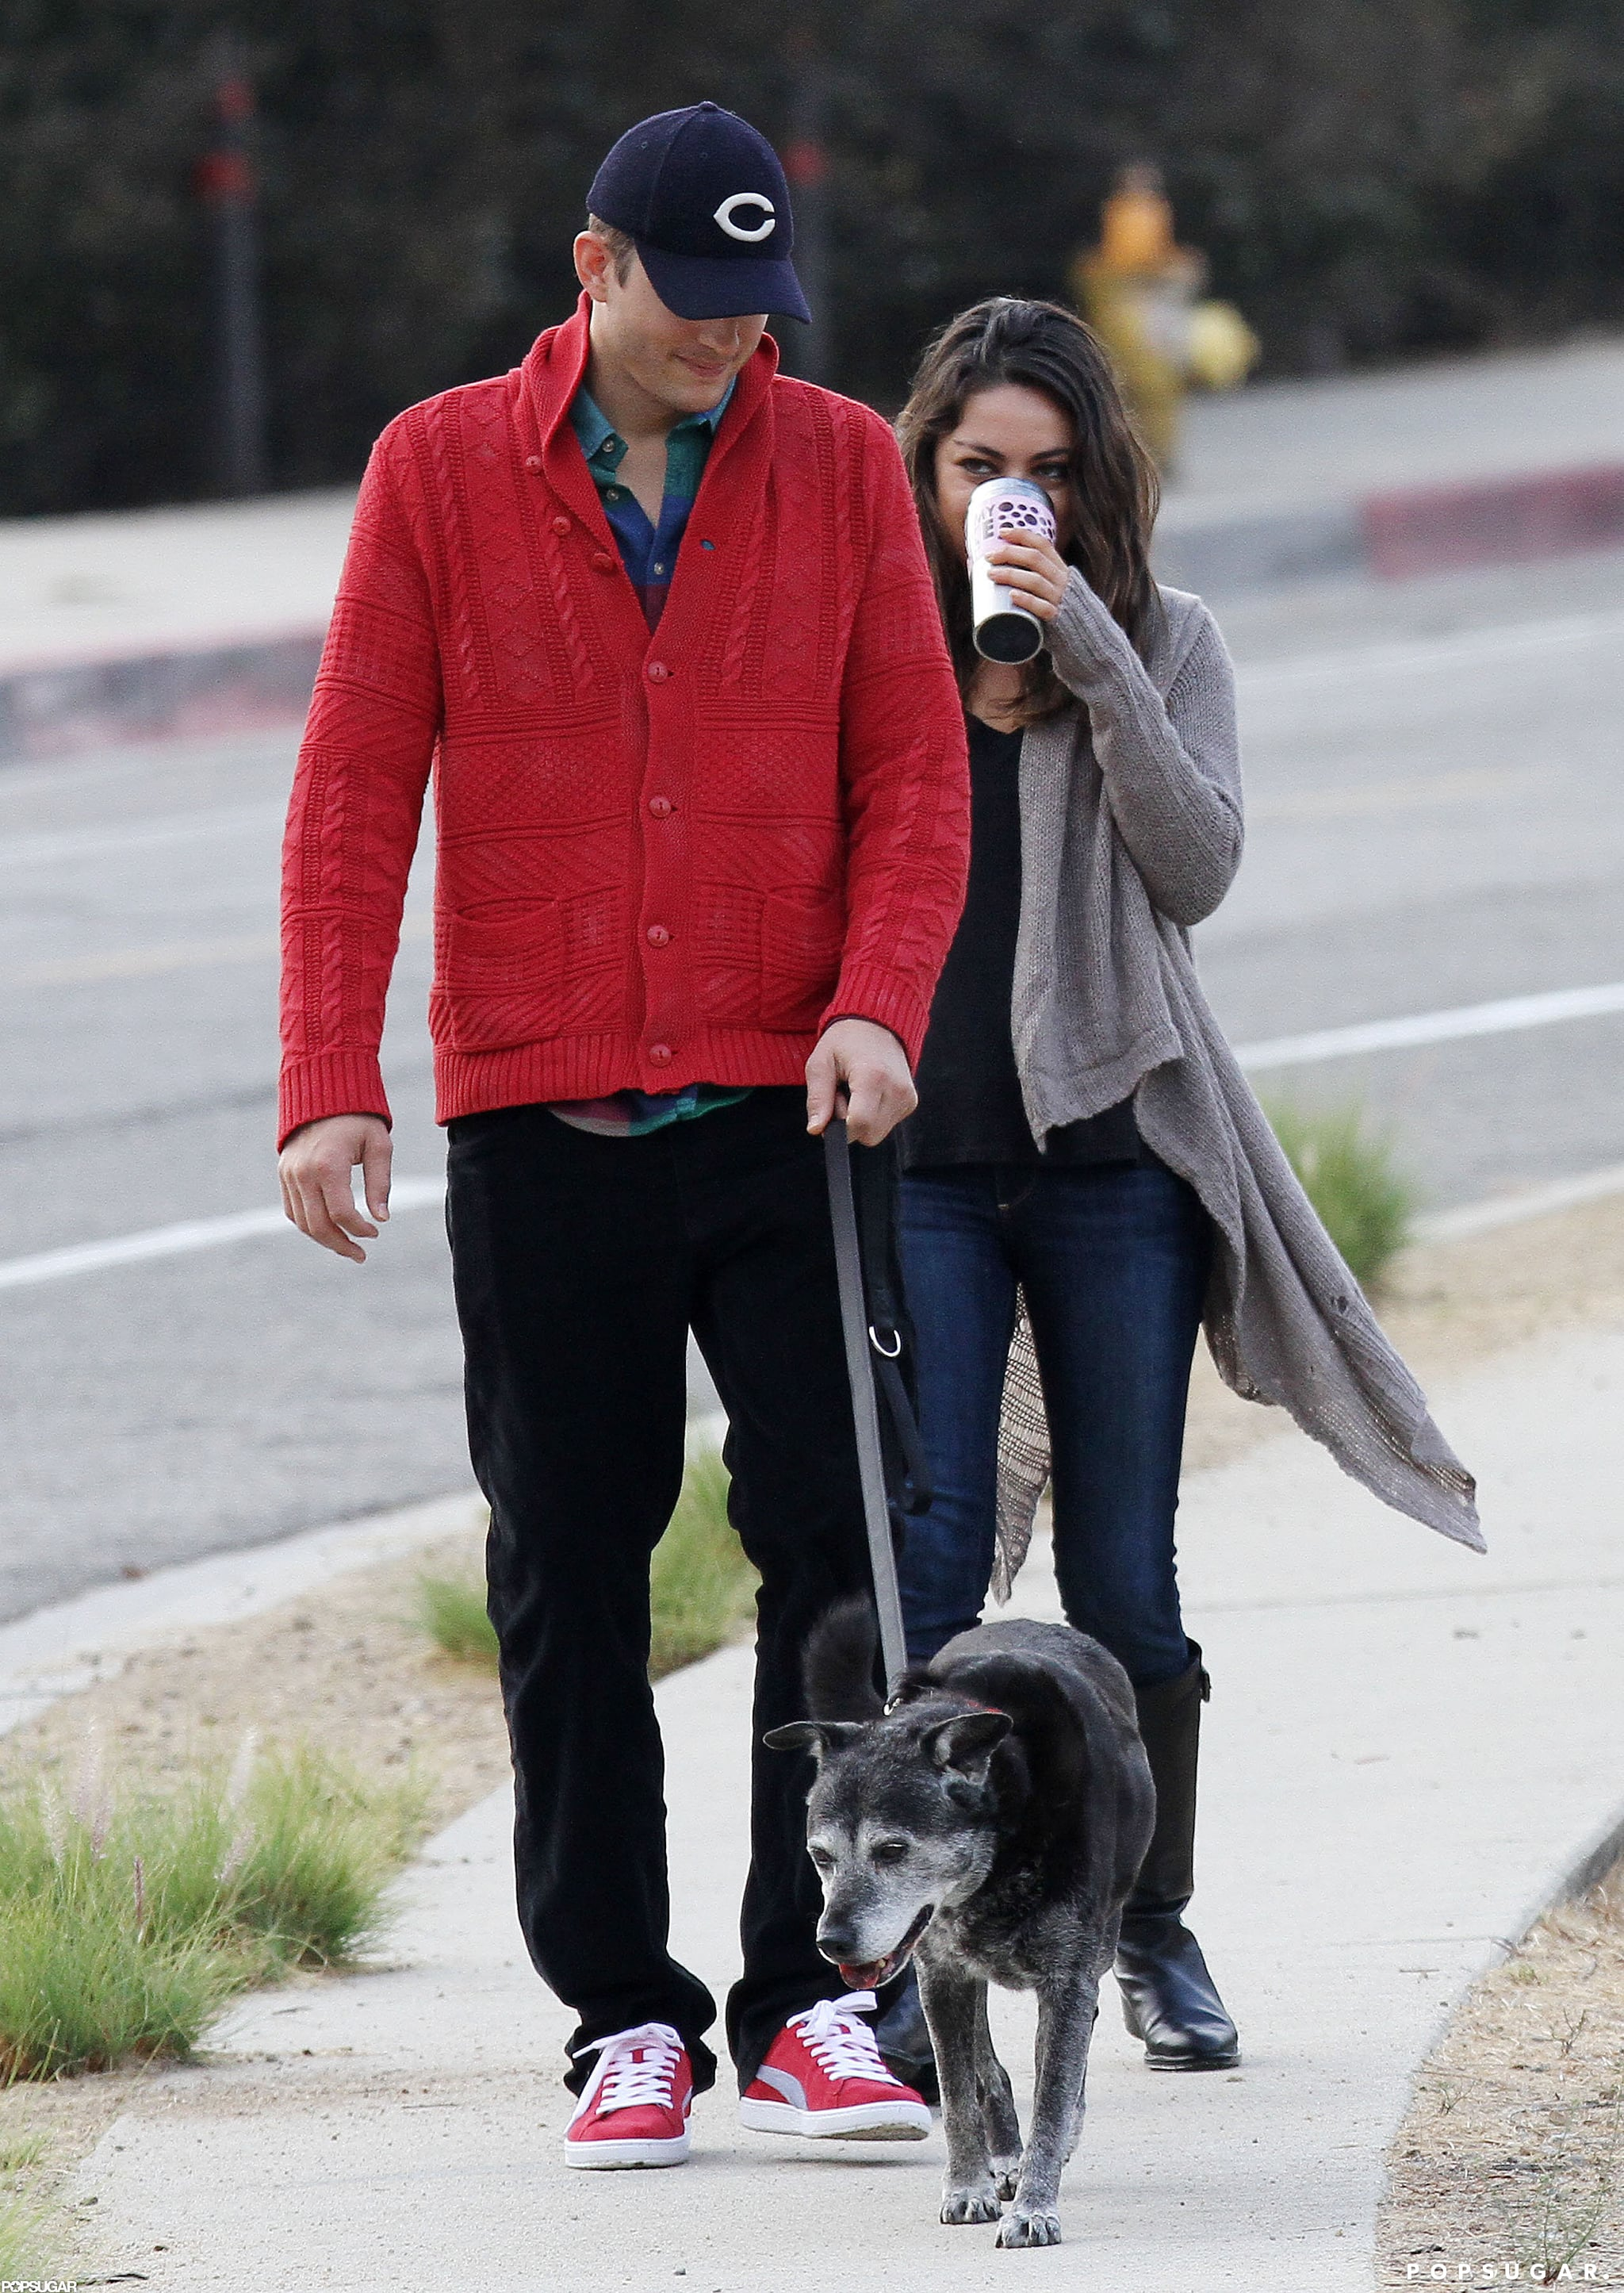 Ashton and Mila took their dog for an early-morning walk in LA in October 2012.